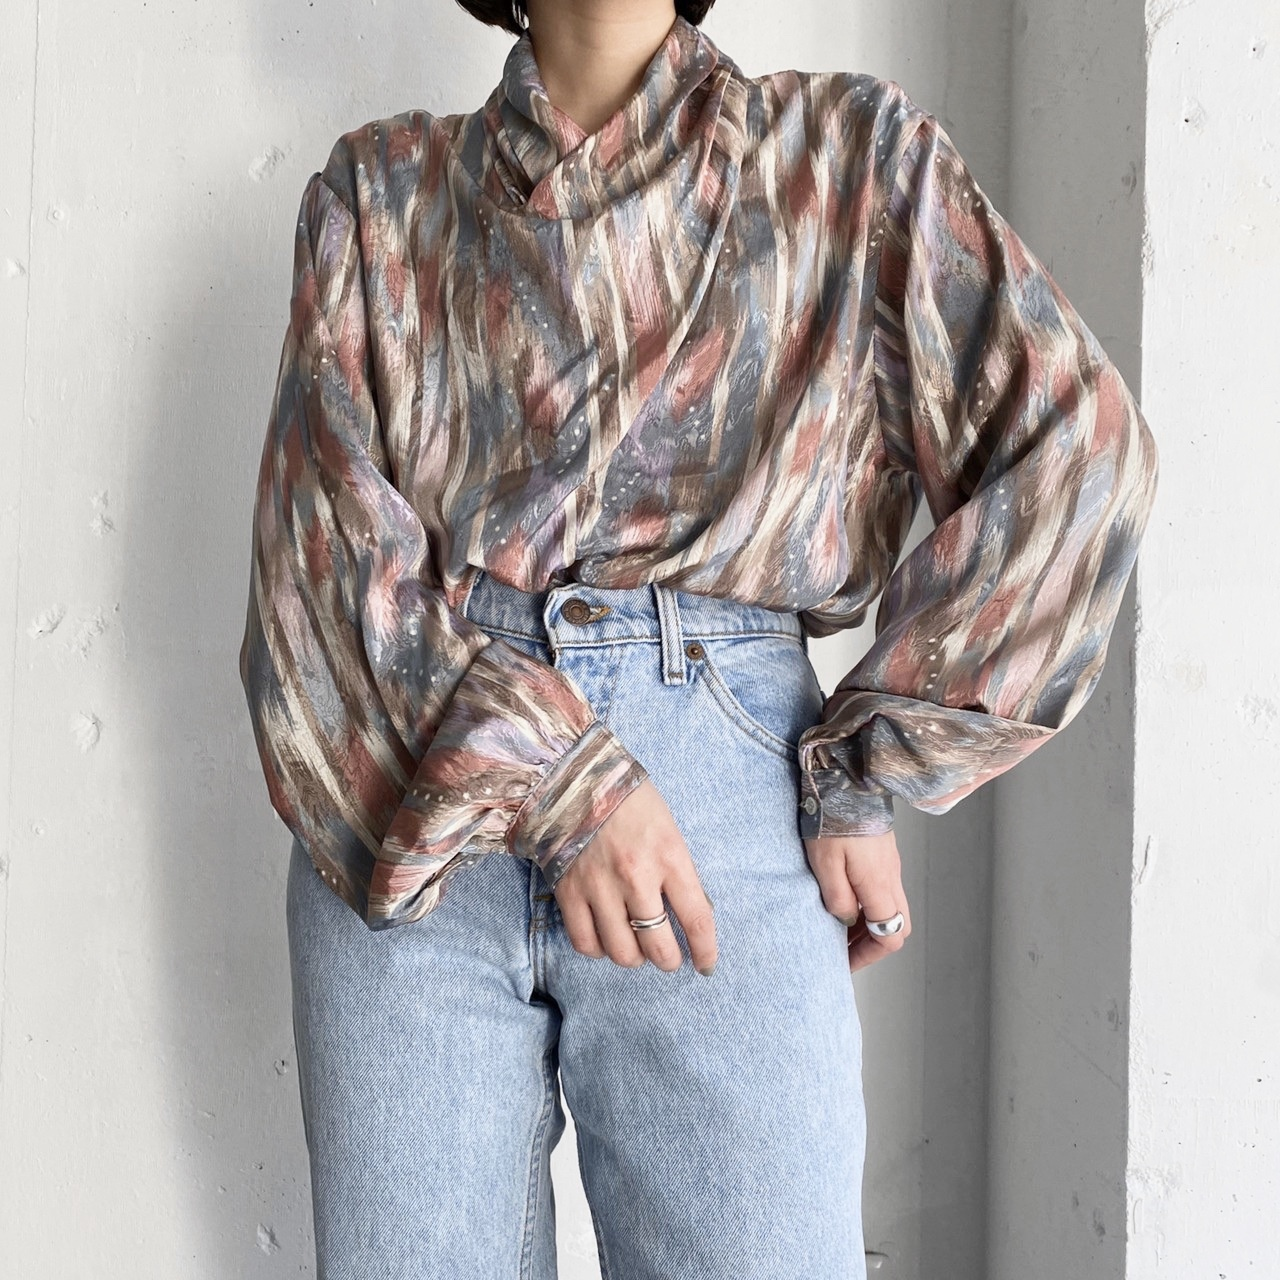 made in USA vintage polyester blouse.